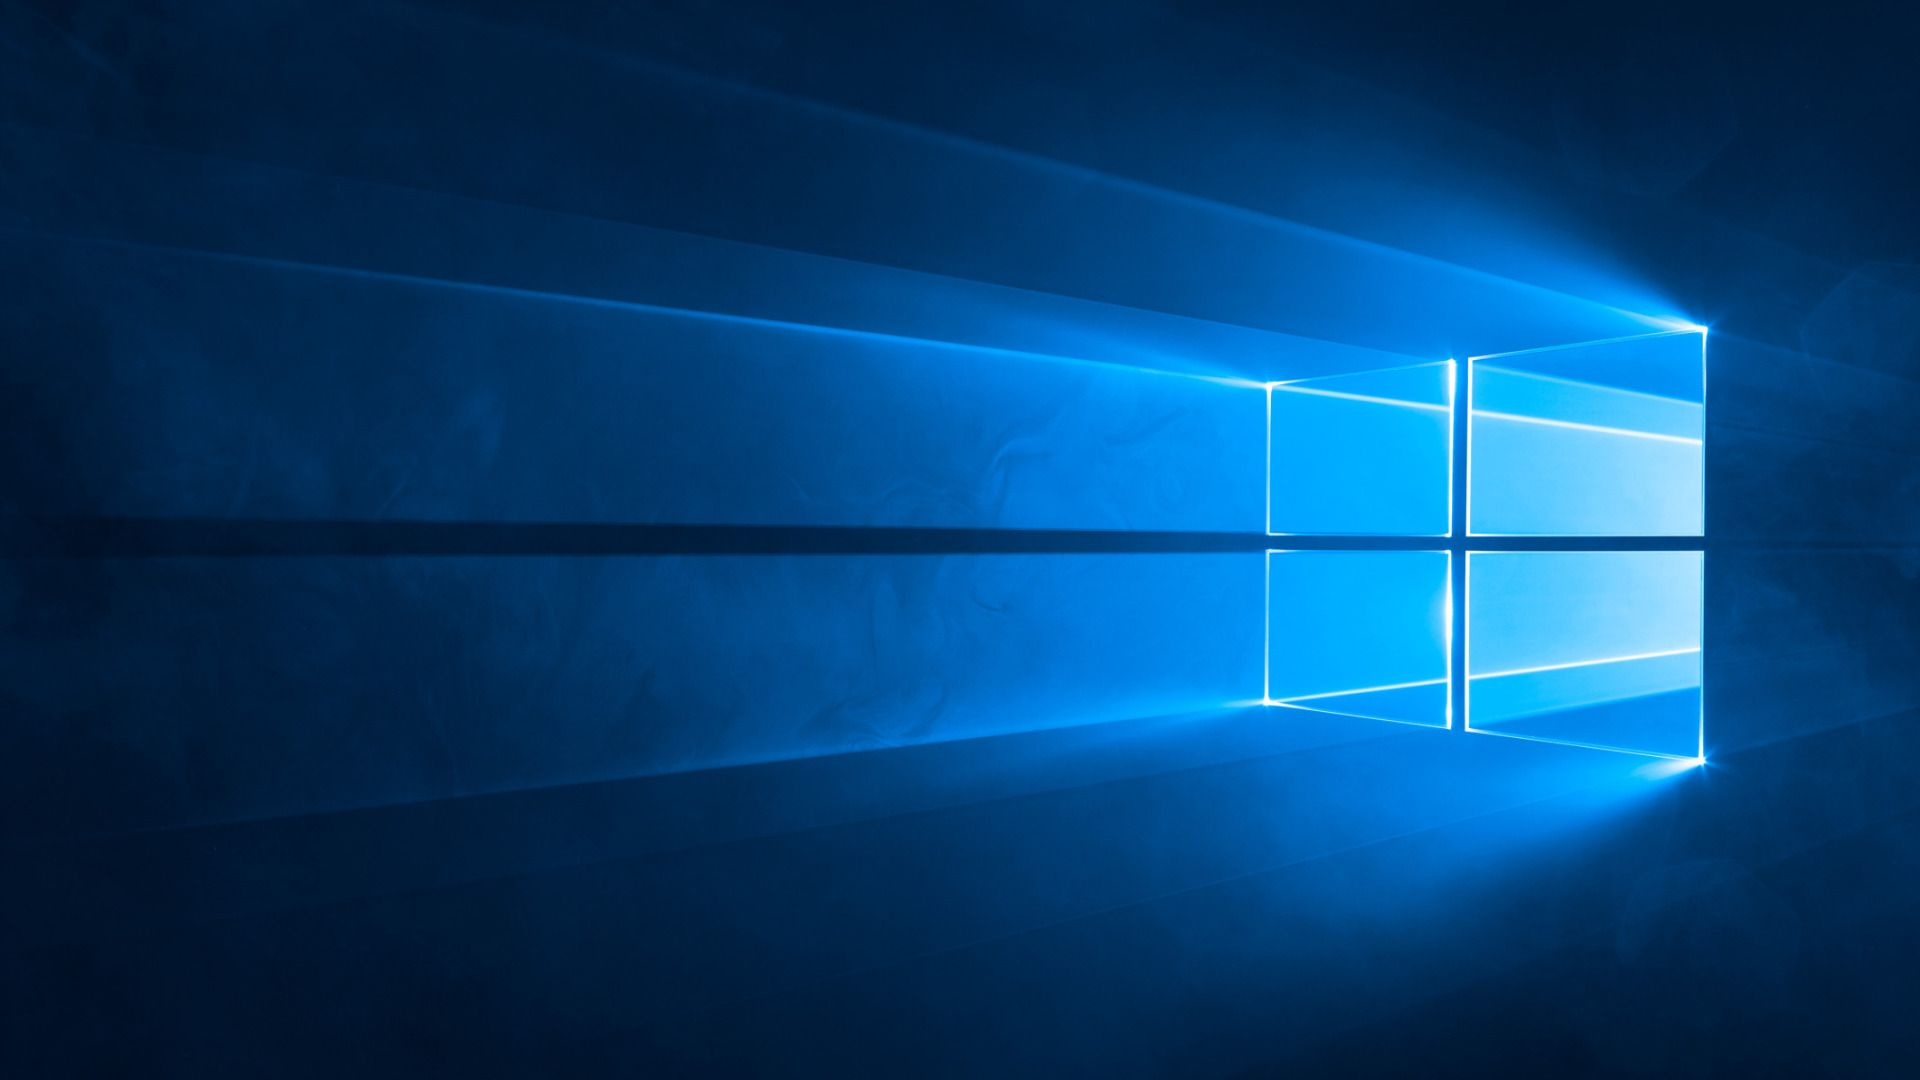 Microsoft Confirms Windows 10x Won T Launch As A Standalone Os And Here S Why In 2021 Wallpaper Windows 10 Windows Wallpaper Windows 10